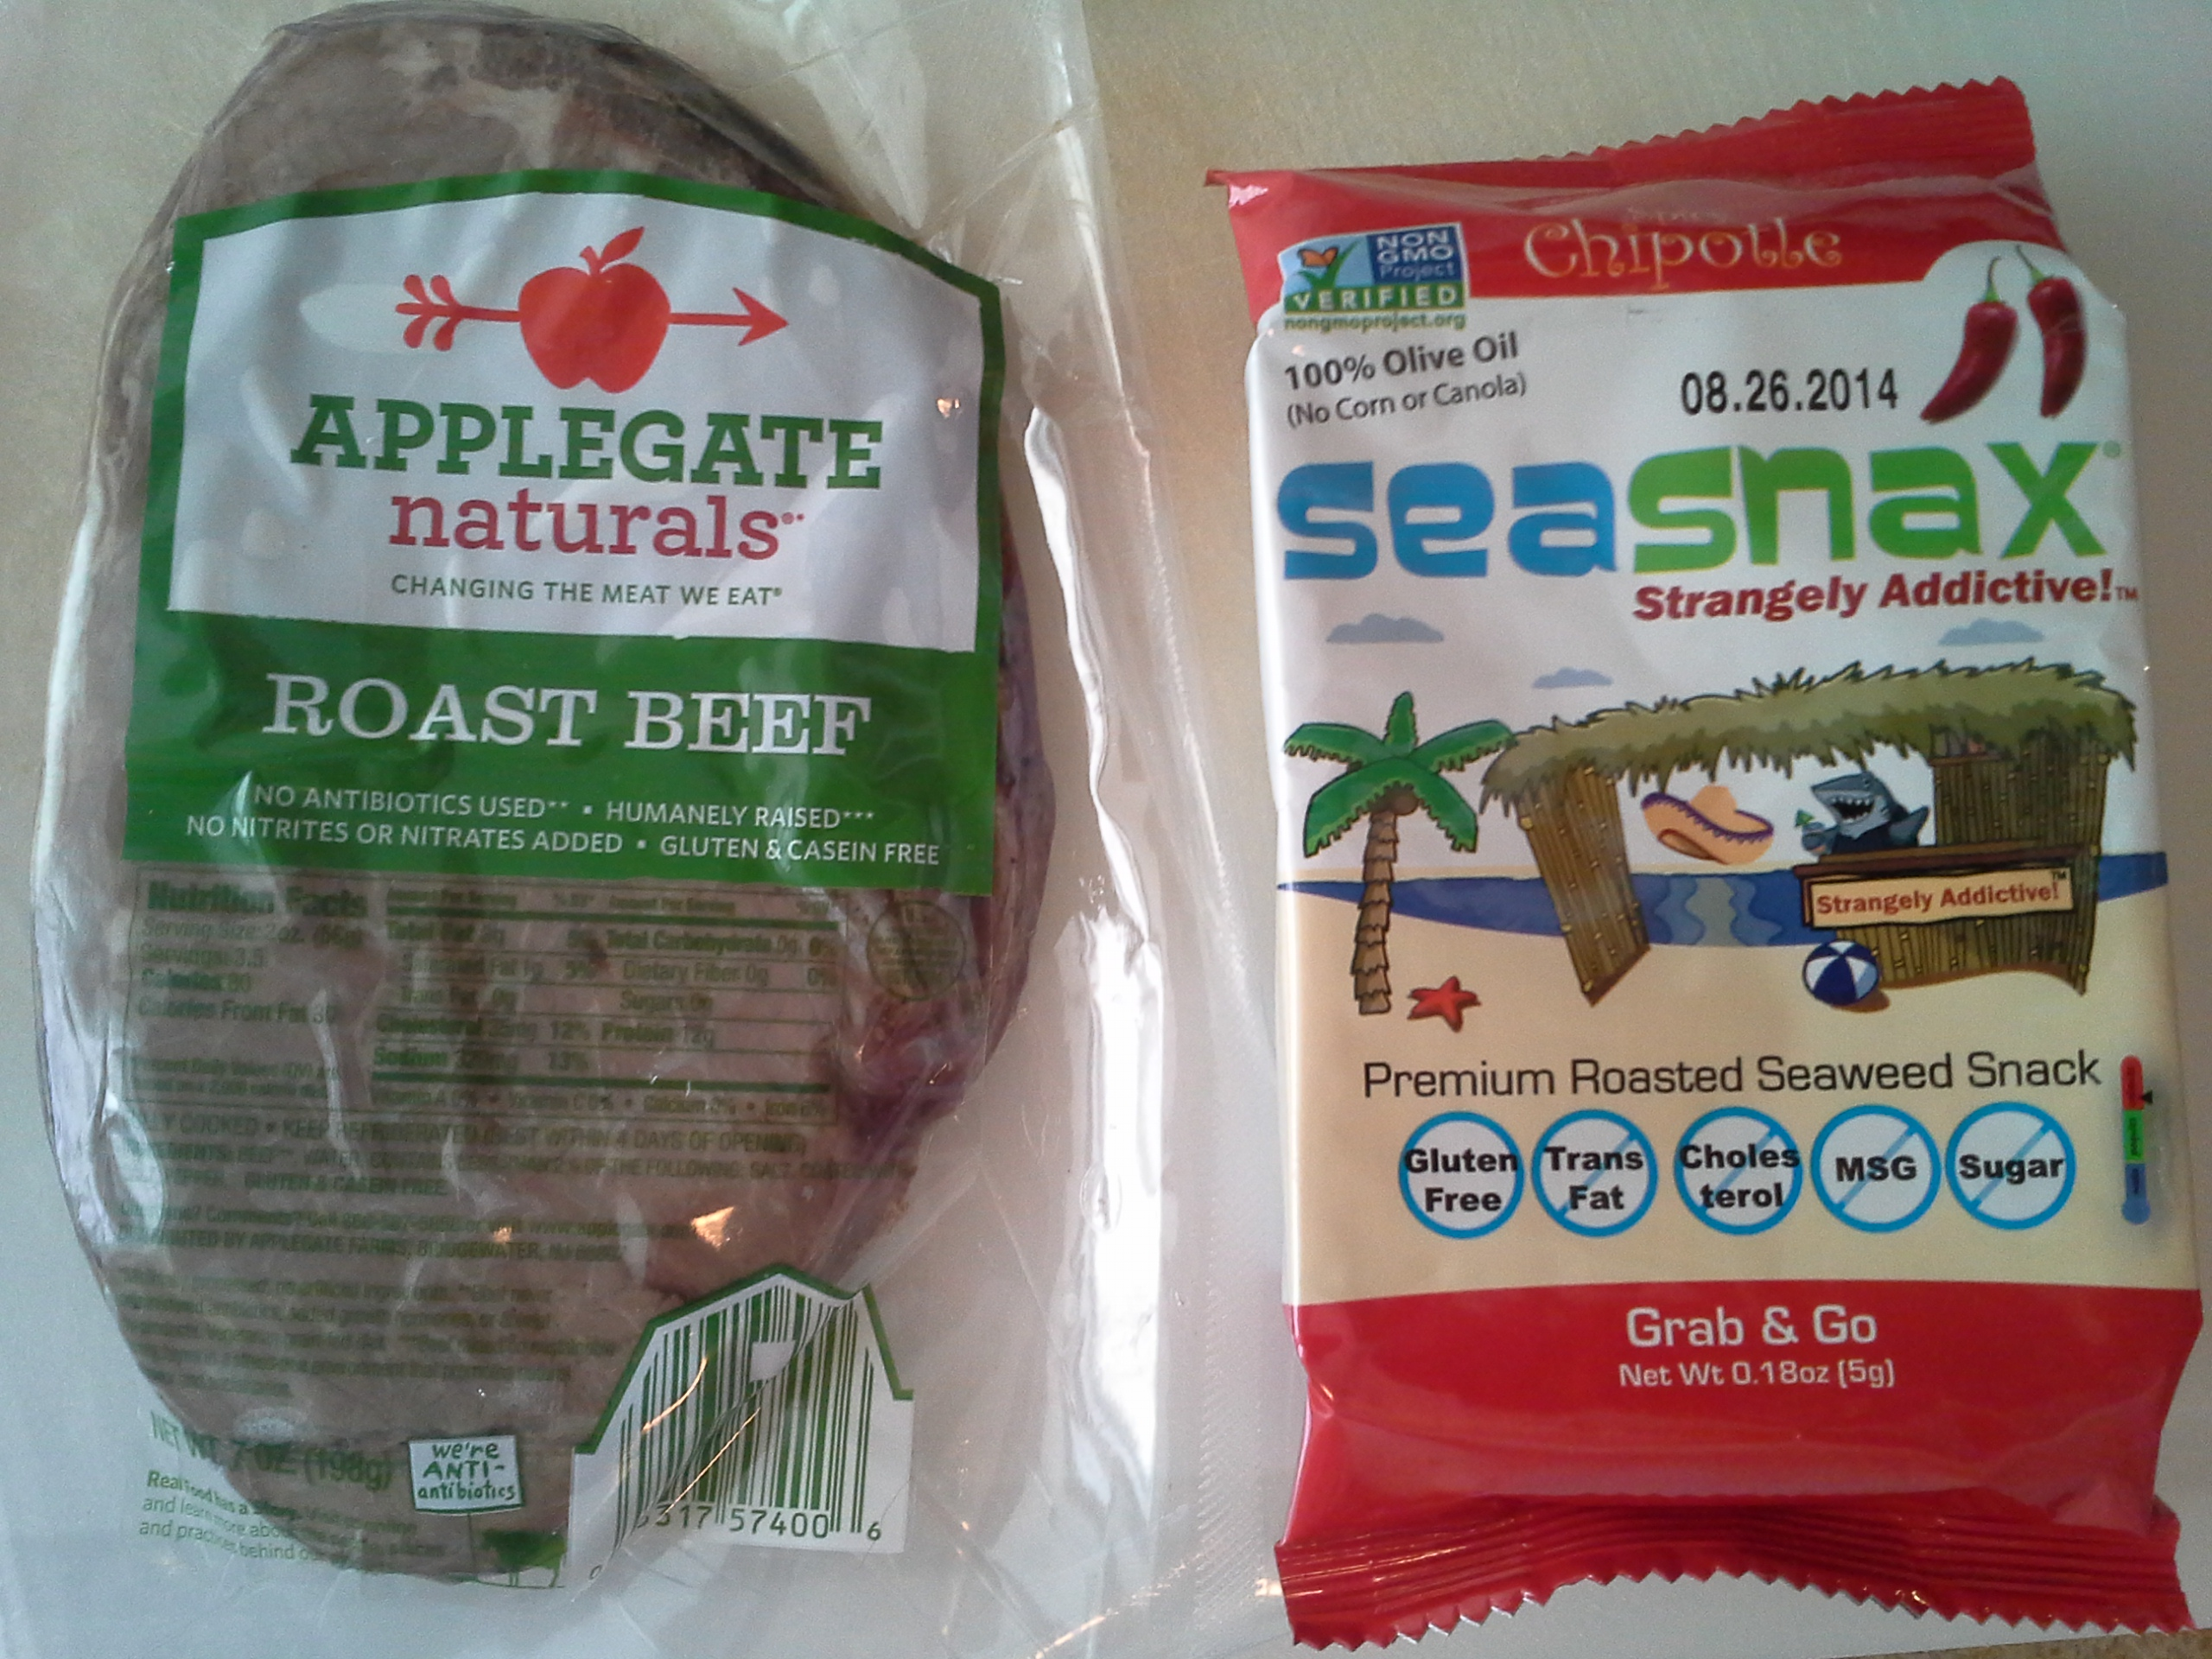 Lunch: 3:20 p.m. | 7 oz. roast beef, .18 oz. chipotle SeaSnax seaweed